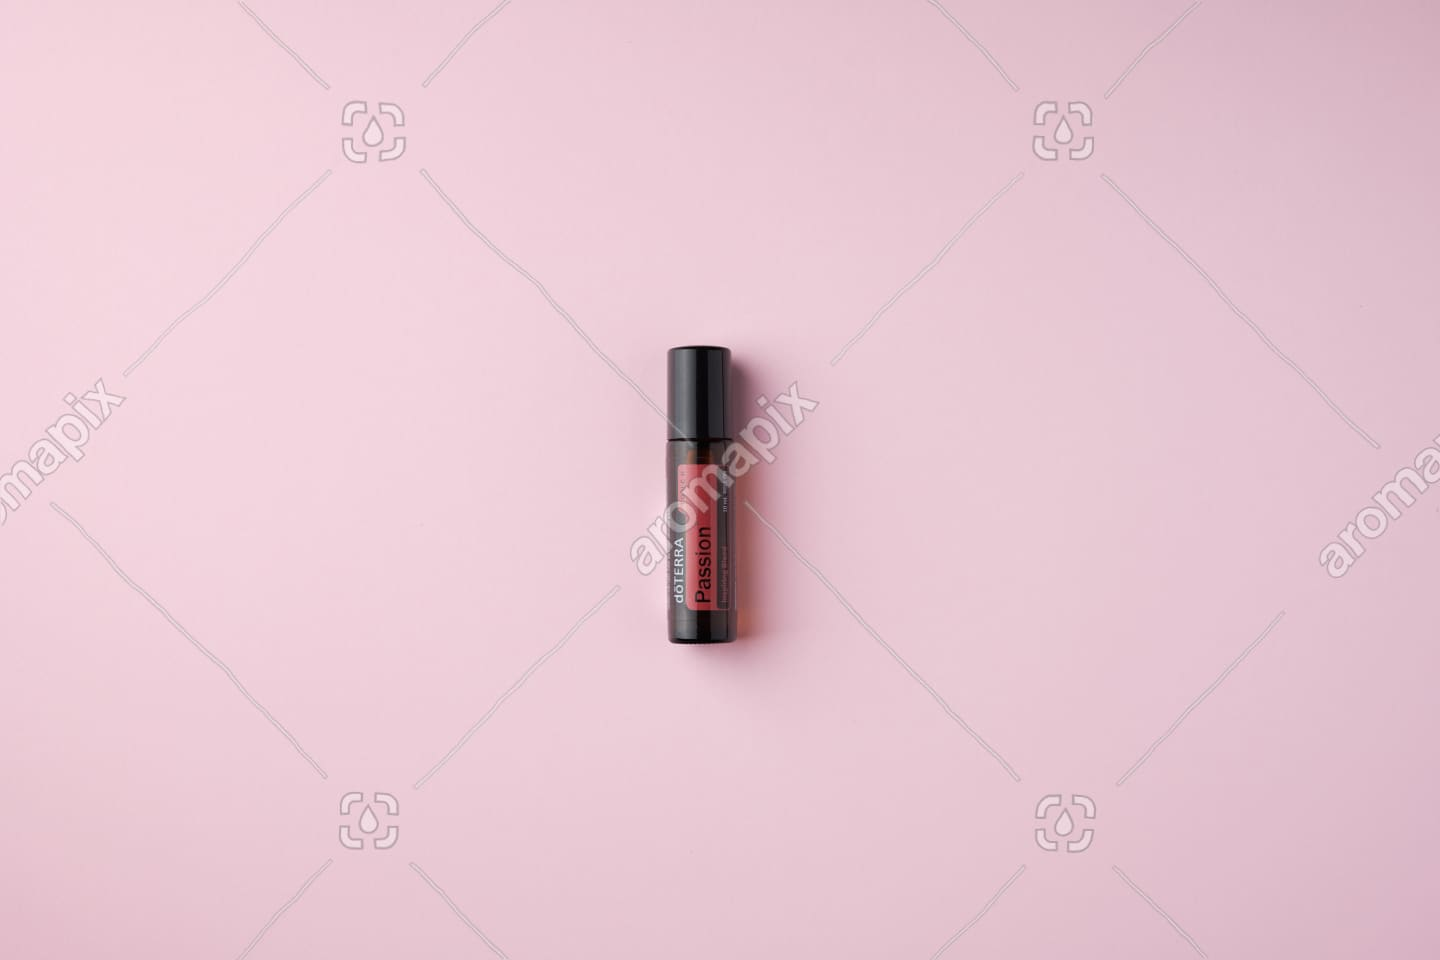 doTERRA Passion Touch on light pink